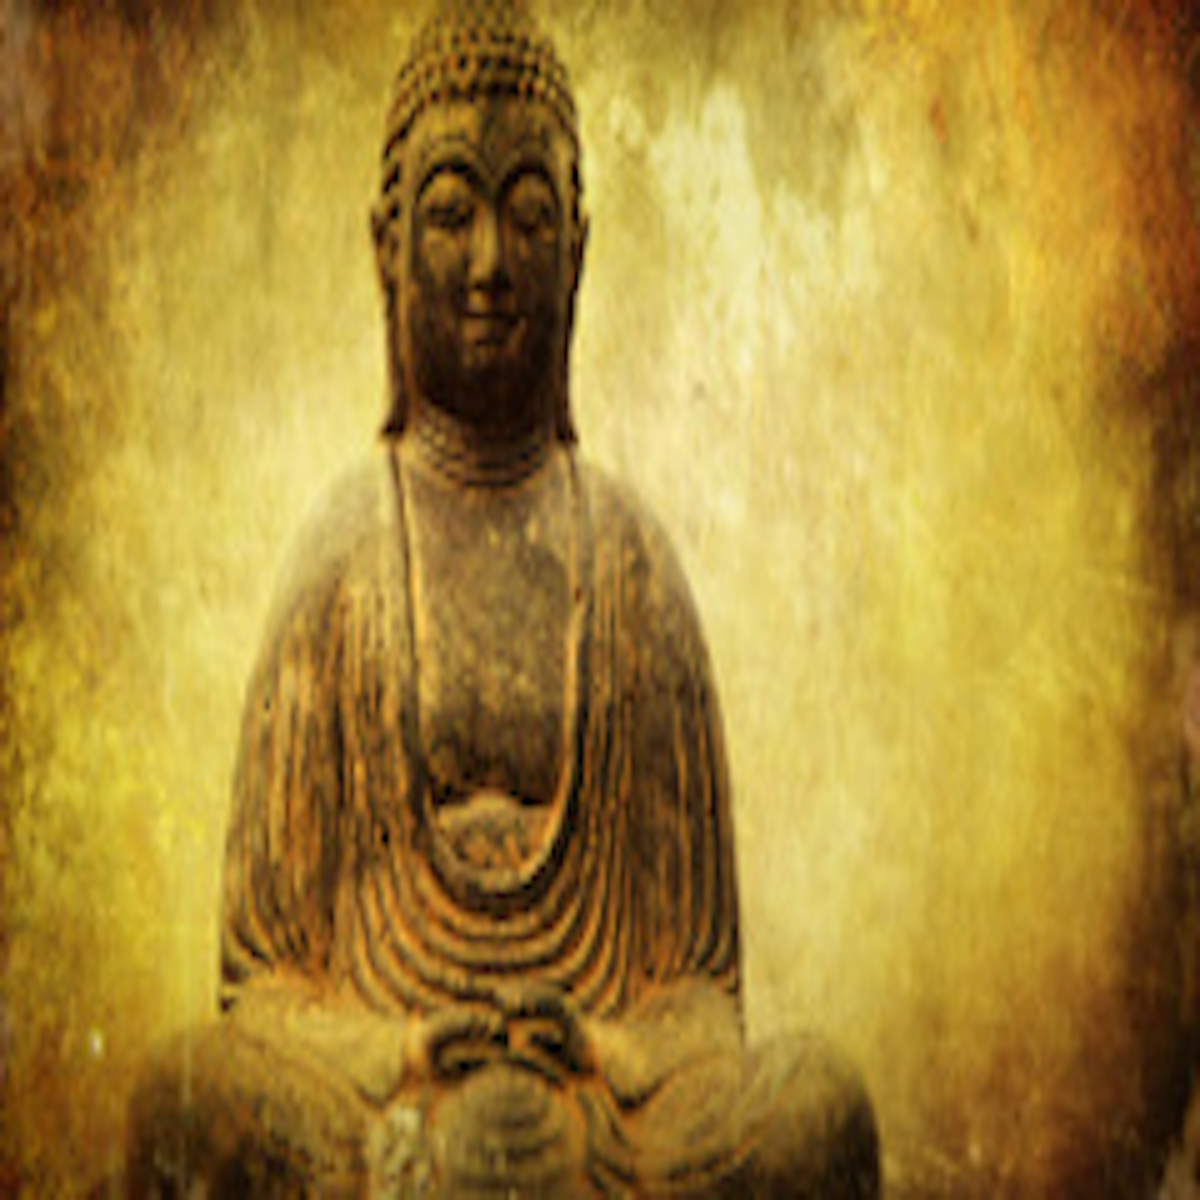 buddhism coursework Buddhist scriptures shown in the introductory video for buddhism through its scriptures harvard university's free interactive course buddhism through its scriptures begins today on their online learning platform buddhism through its scriptures is the third module of the harvardx.